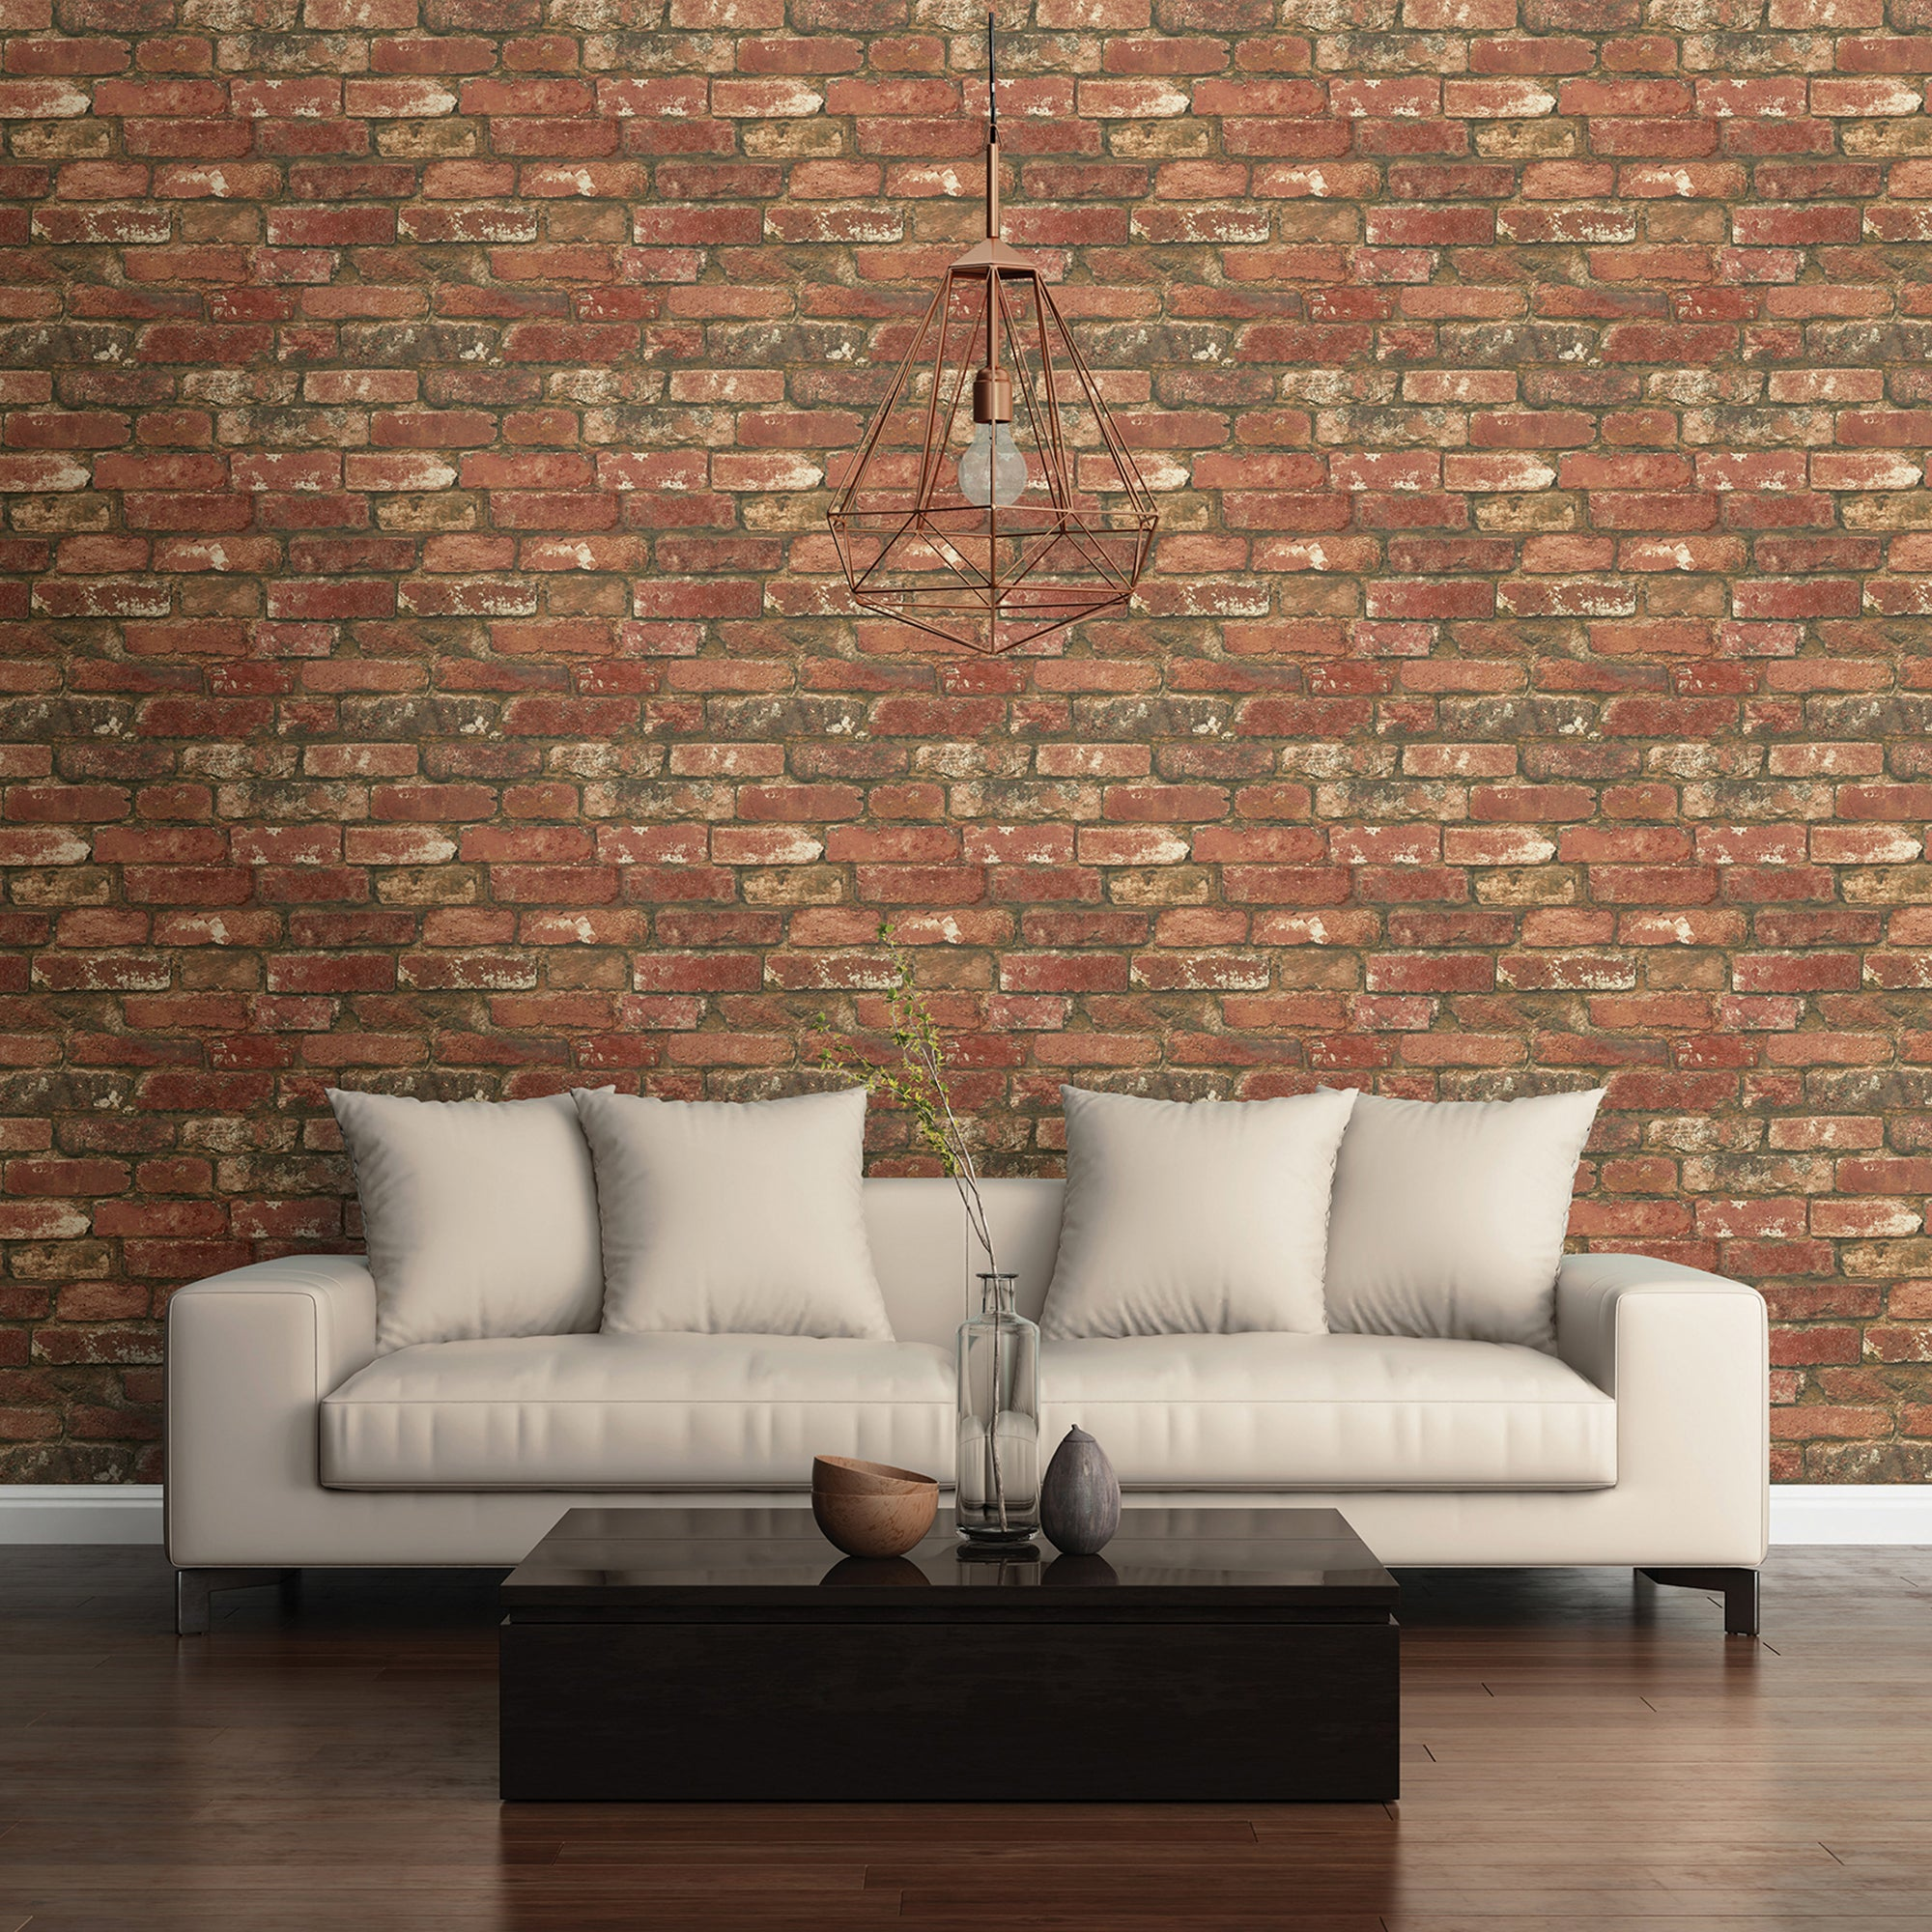 Click to view product details and reviews for Nuwallpaper West End Brick Self Adhesive Wallpaper Red.